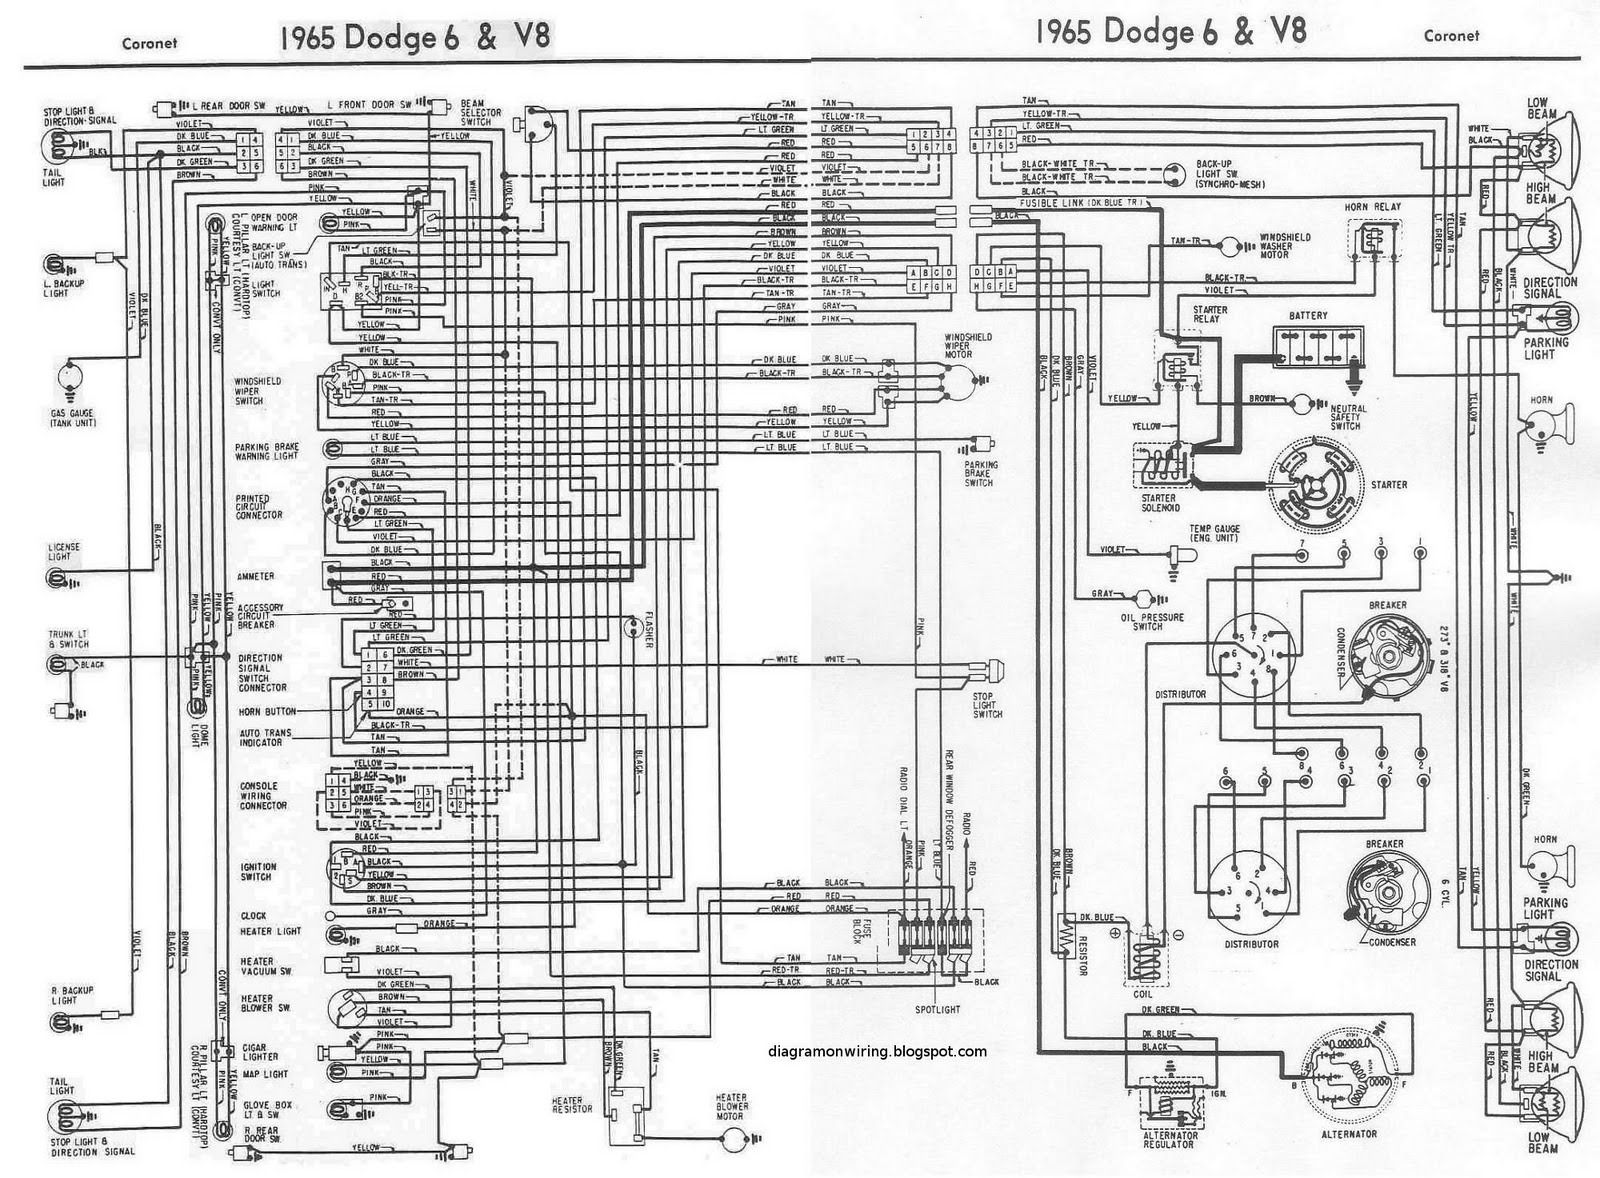 hight resolution of dodge alternator wiring 1965 electrical wiring diagram1967 dodge alternator wiring wiring diagram repair guides1966 plymouth alternator